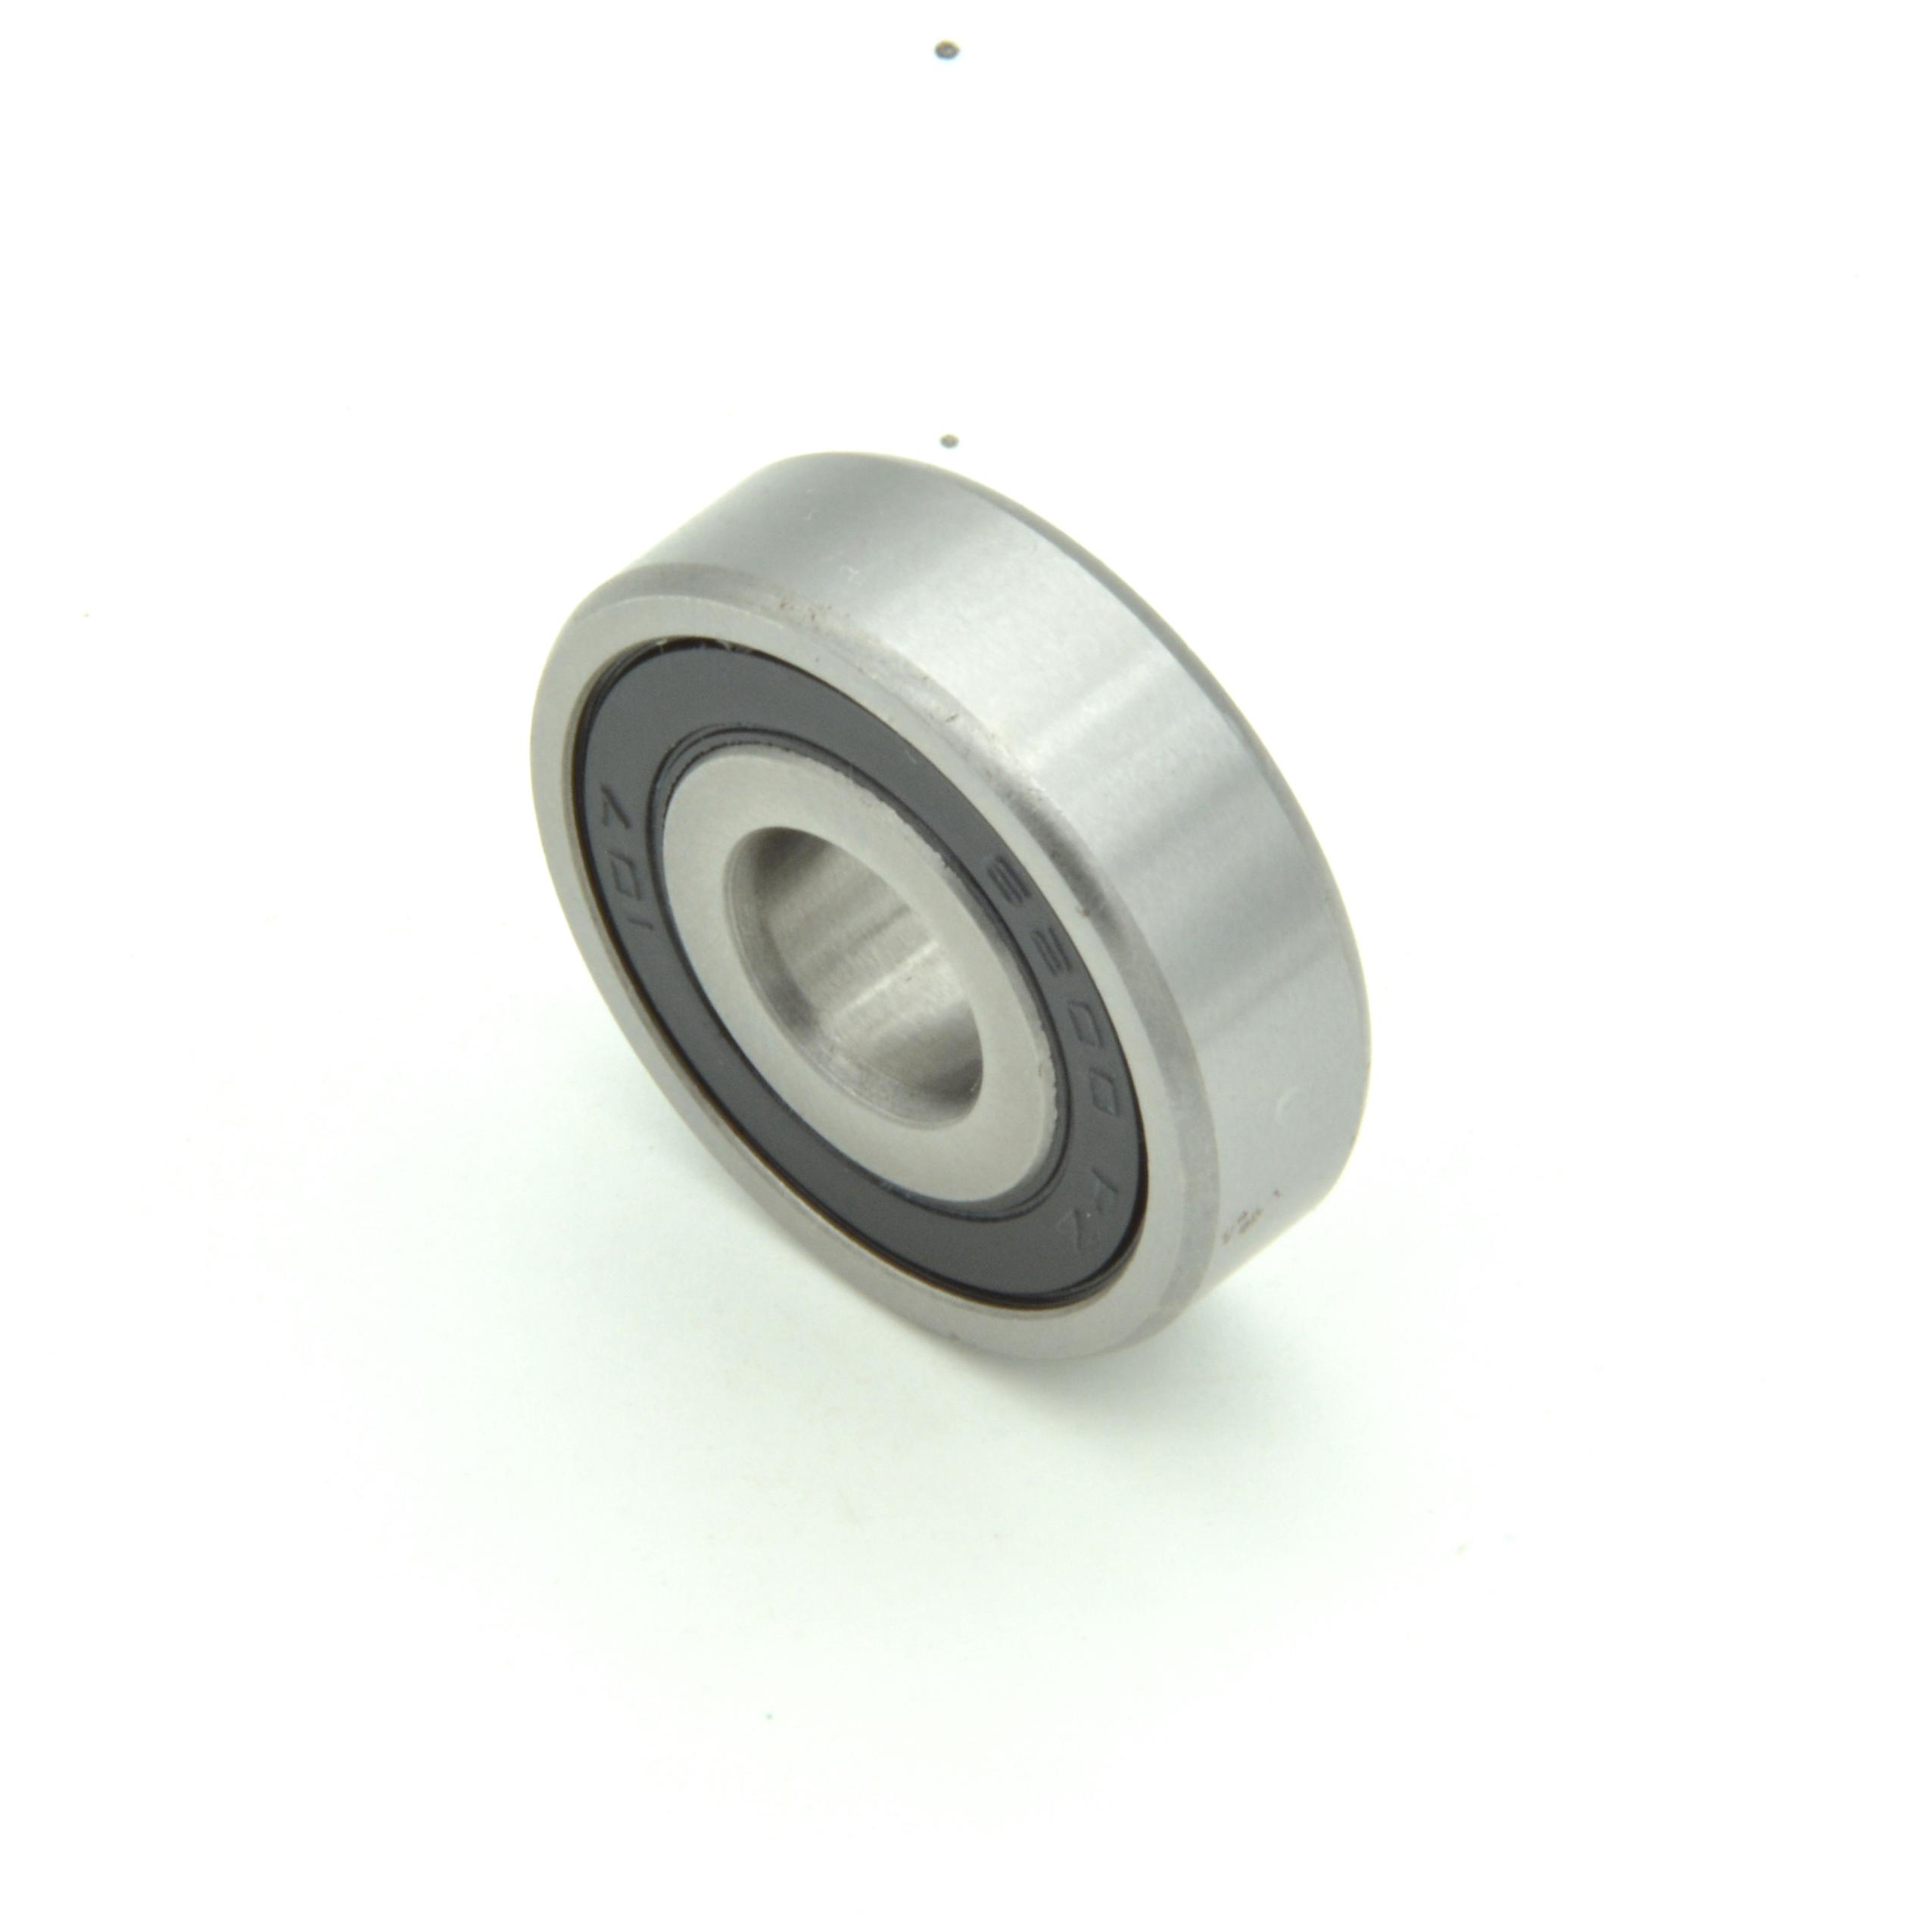 Double Rubber Shielded Deep Groove Ball Bearing 6200, 6201, 6202, 6203 or 6204 2RS 10mm Bore image